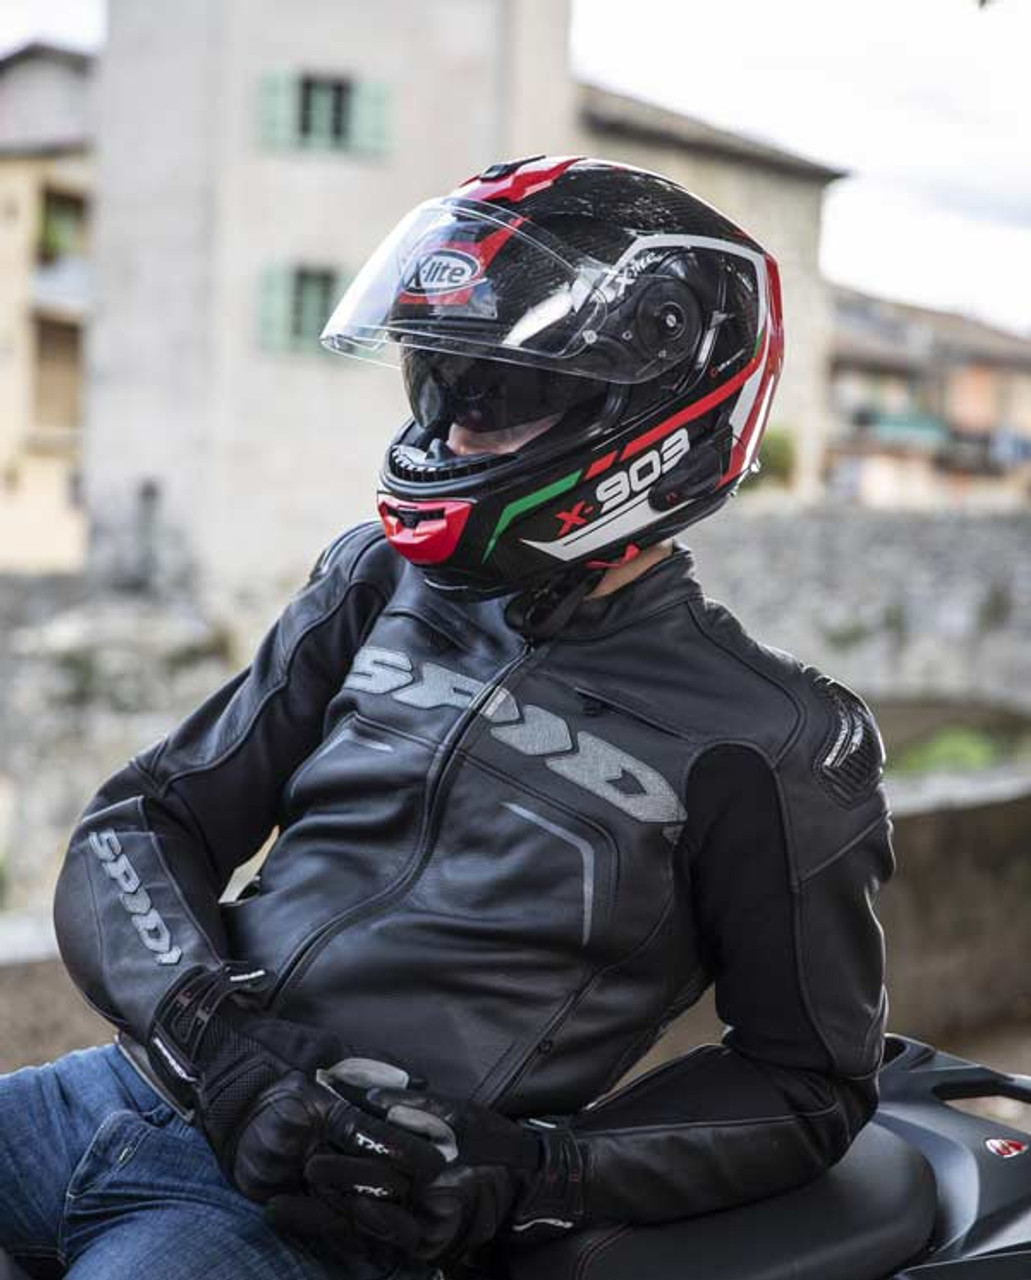 X-Lite X903 (by Nolan Helmets Italy) Ultra Carbon Full Face Motorcycle Helmet - Tri Colour: Carbon / Red / White